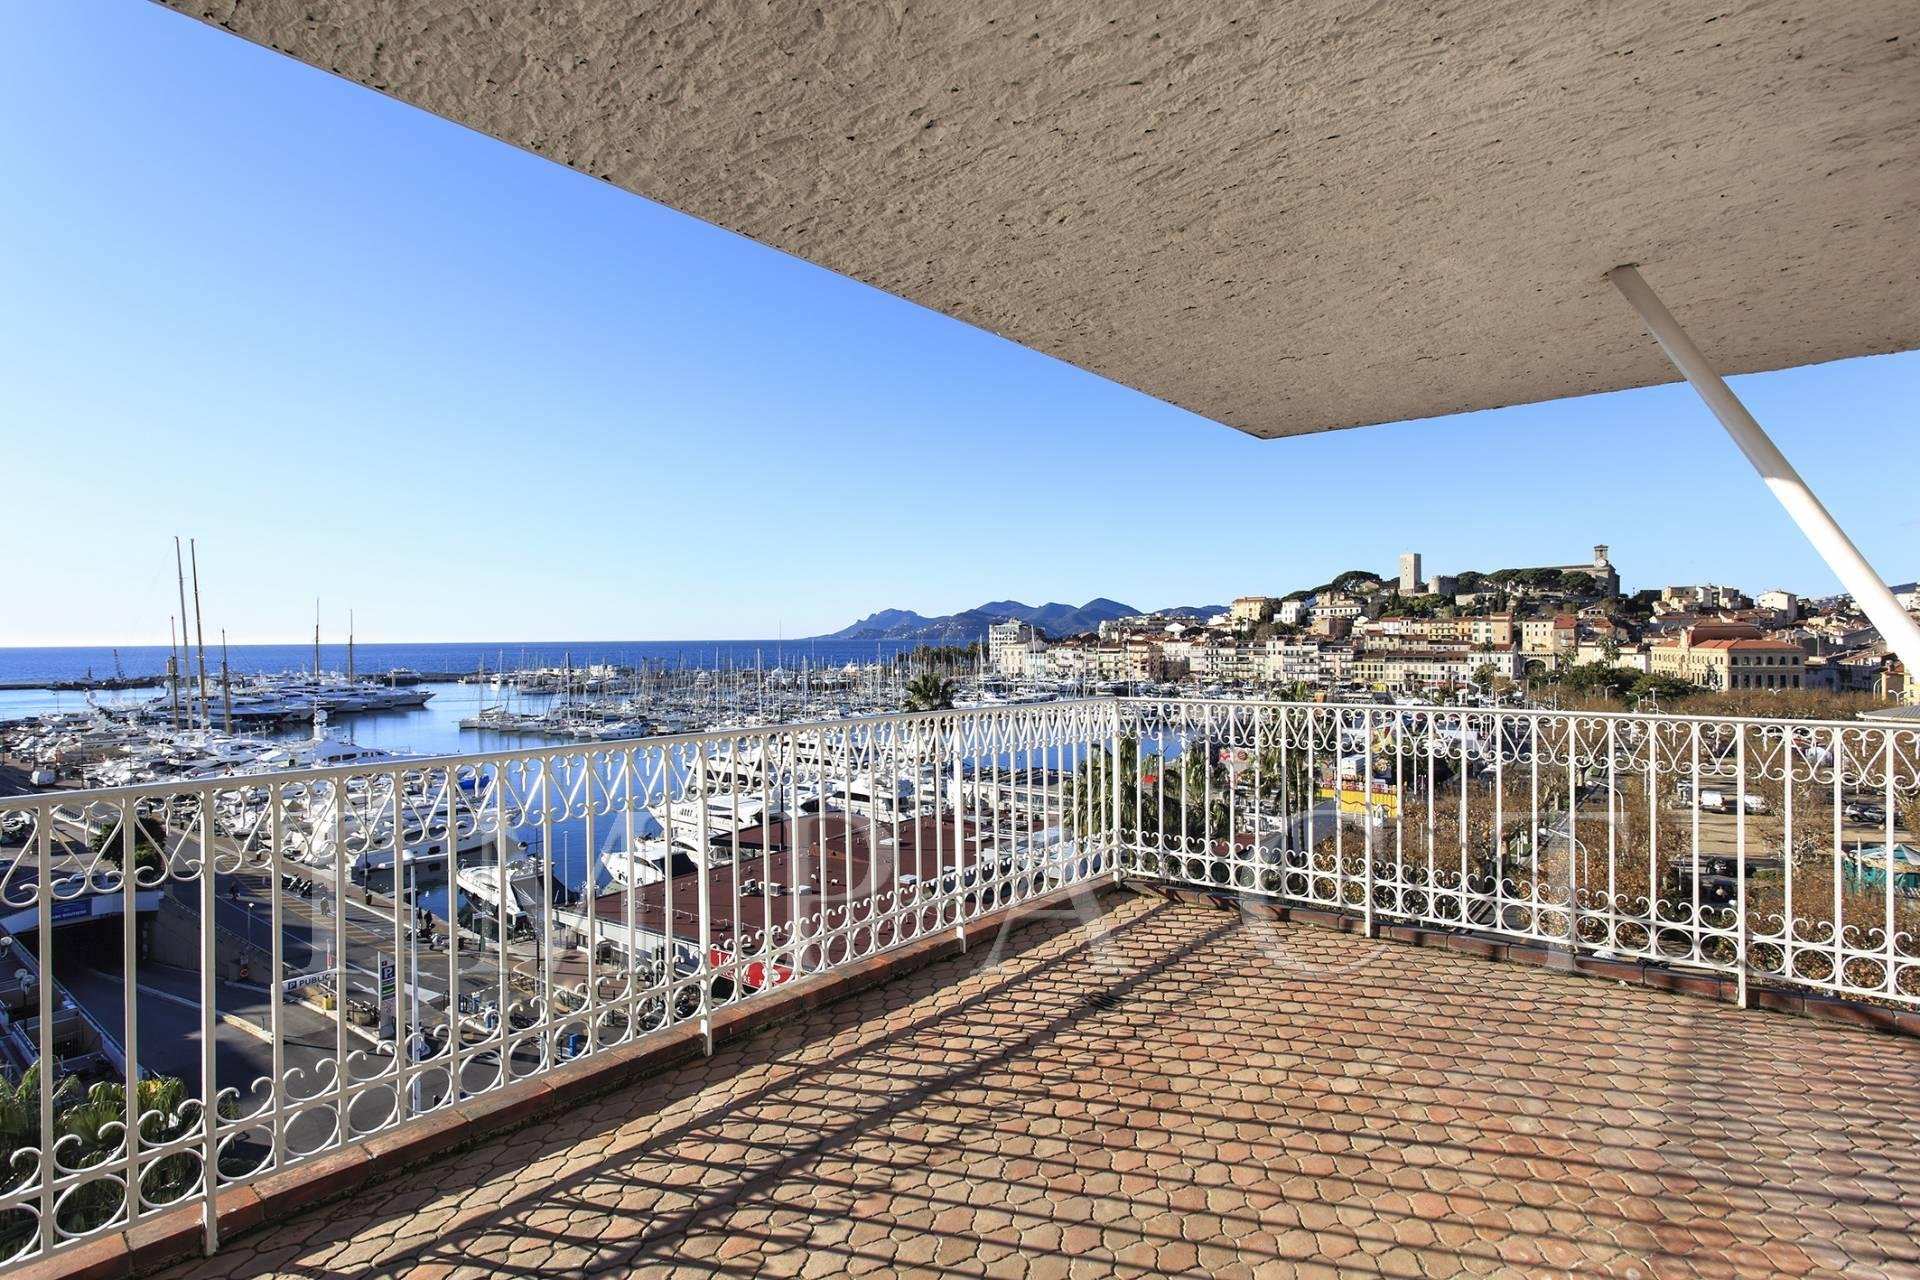 Apartment to rent, facing old pier and Palais des Festivals, Cannes